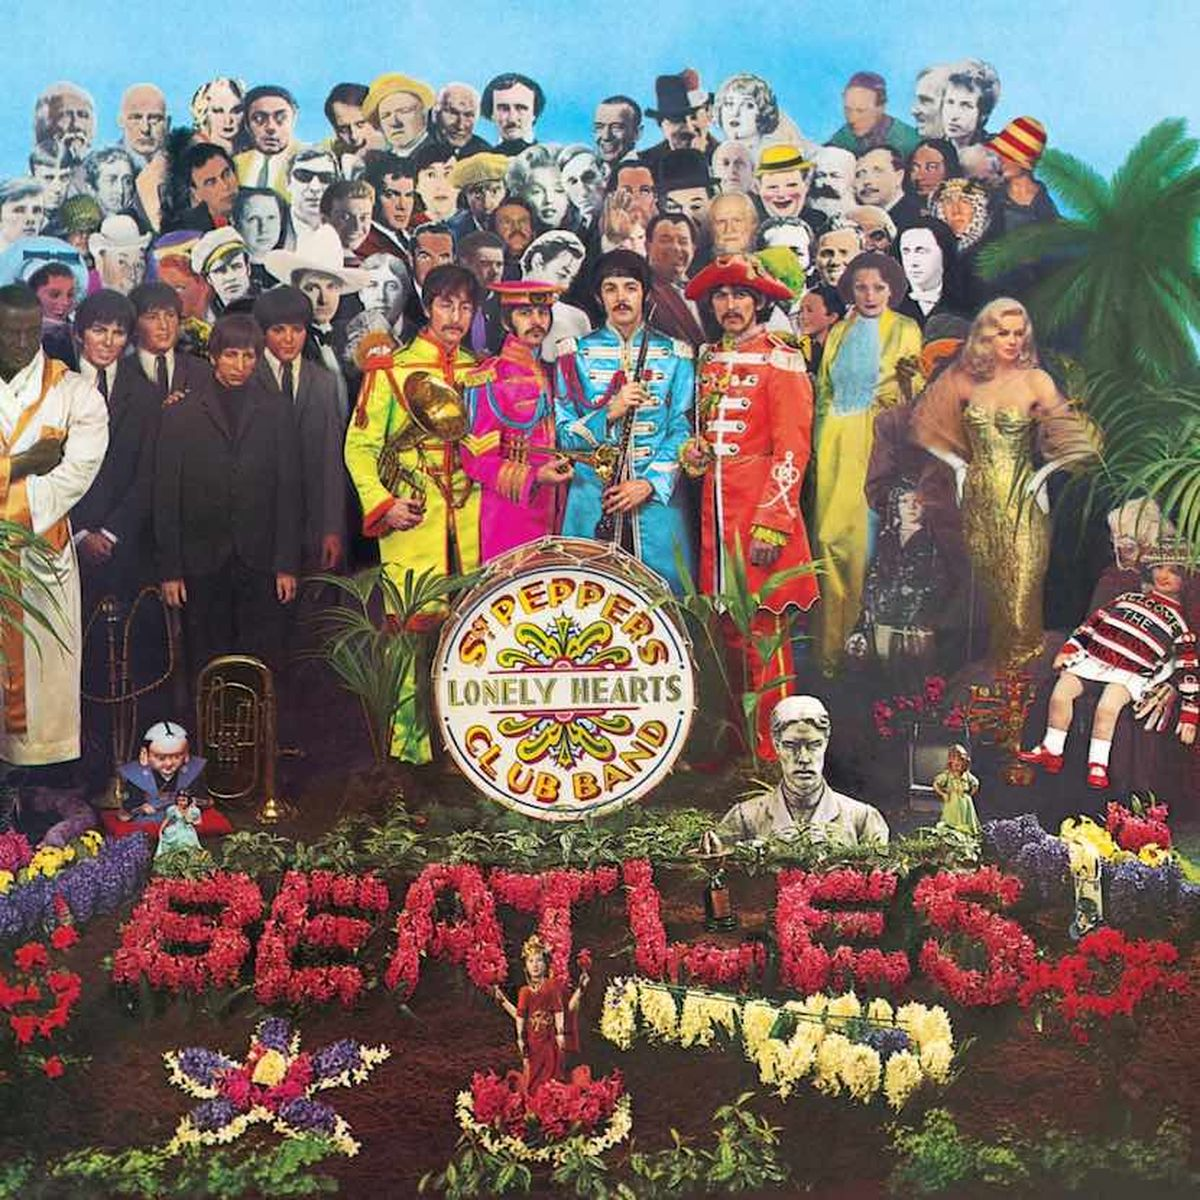 One of the most famous album covers in music history, The Beatles' Sgt Pepper's Lonely Heart's Club Band, designed by artists Peter Blake and Jann Haworth